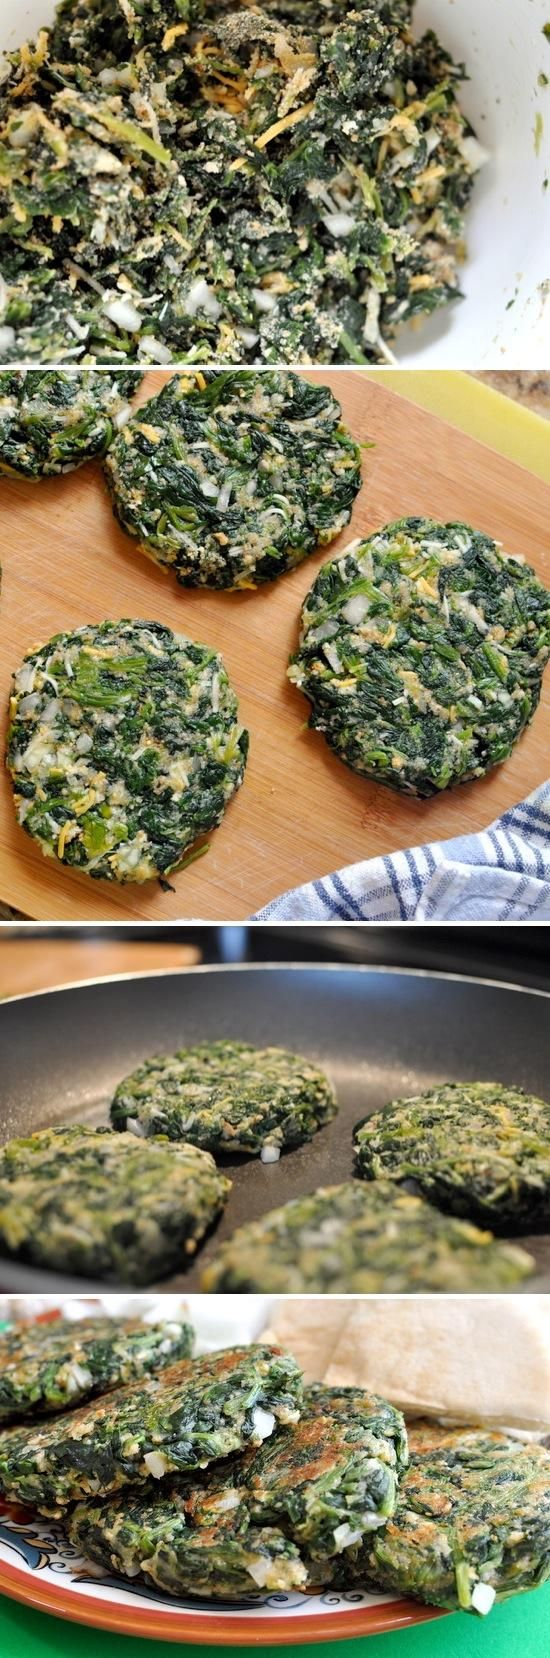 "spinach ""burgers"". These are high in protein, low in carbs and absolutely delicious."